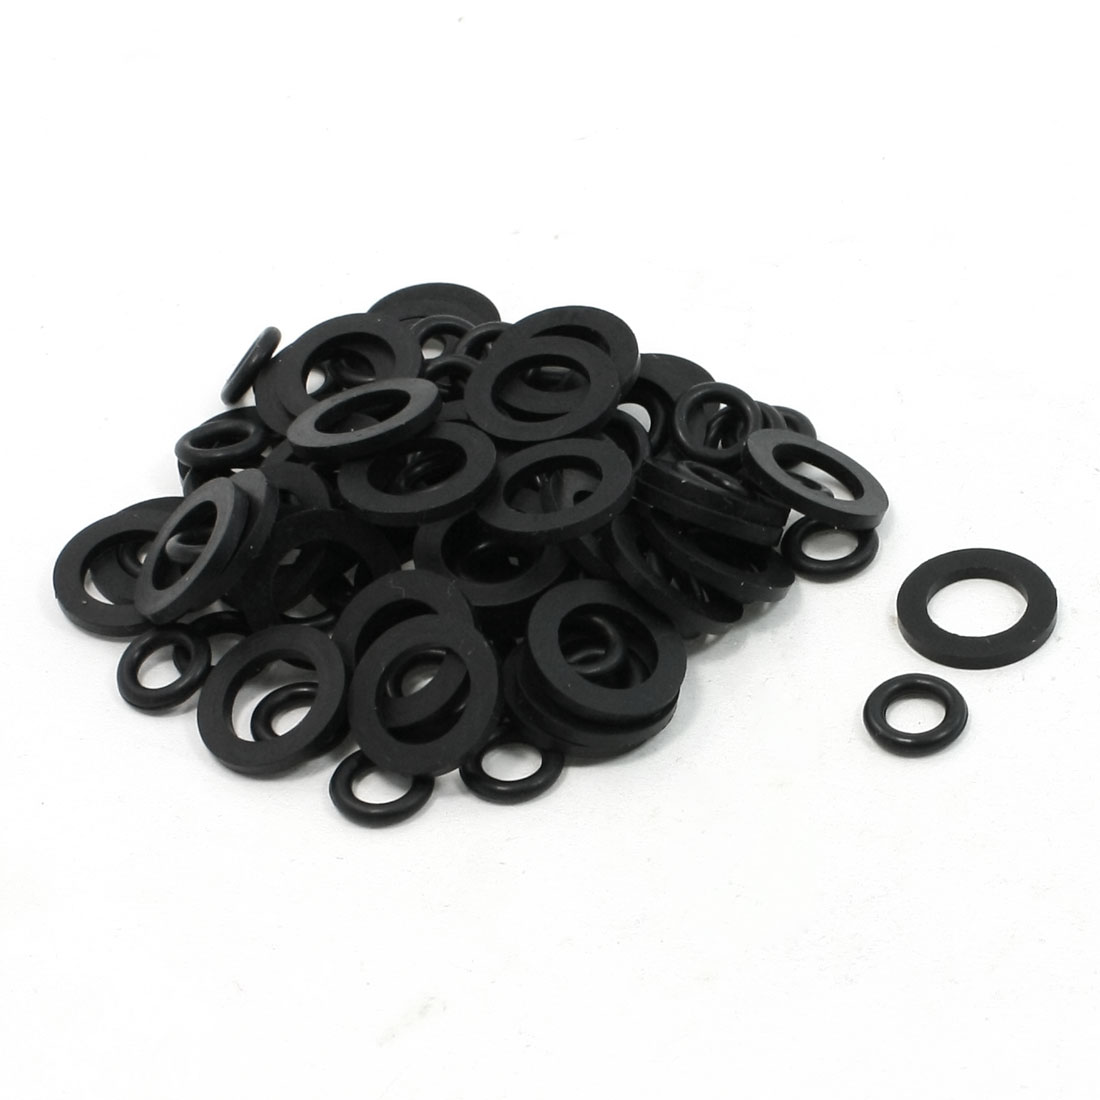 100 Pcs 12mm Outside Diameter Rubber Washers O Ring Oil Seal Gaskets Set